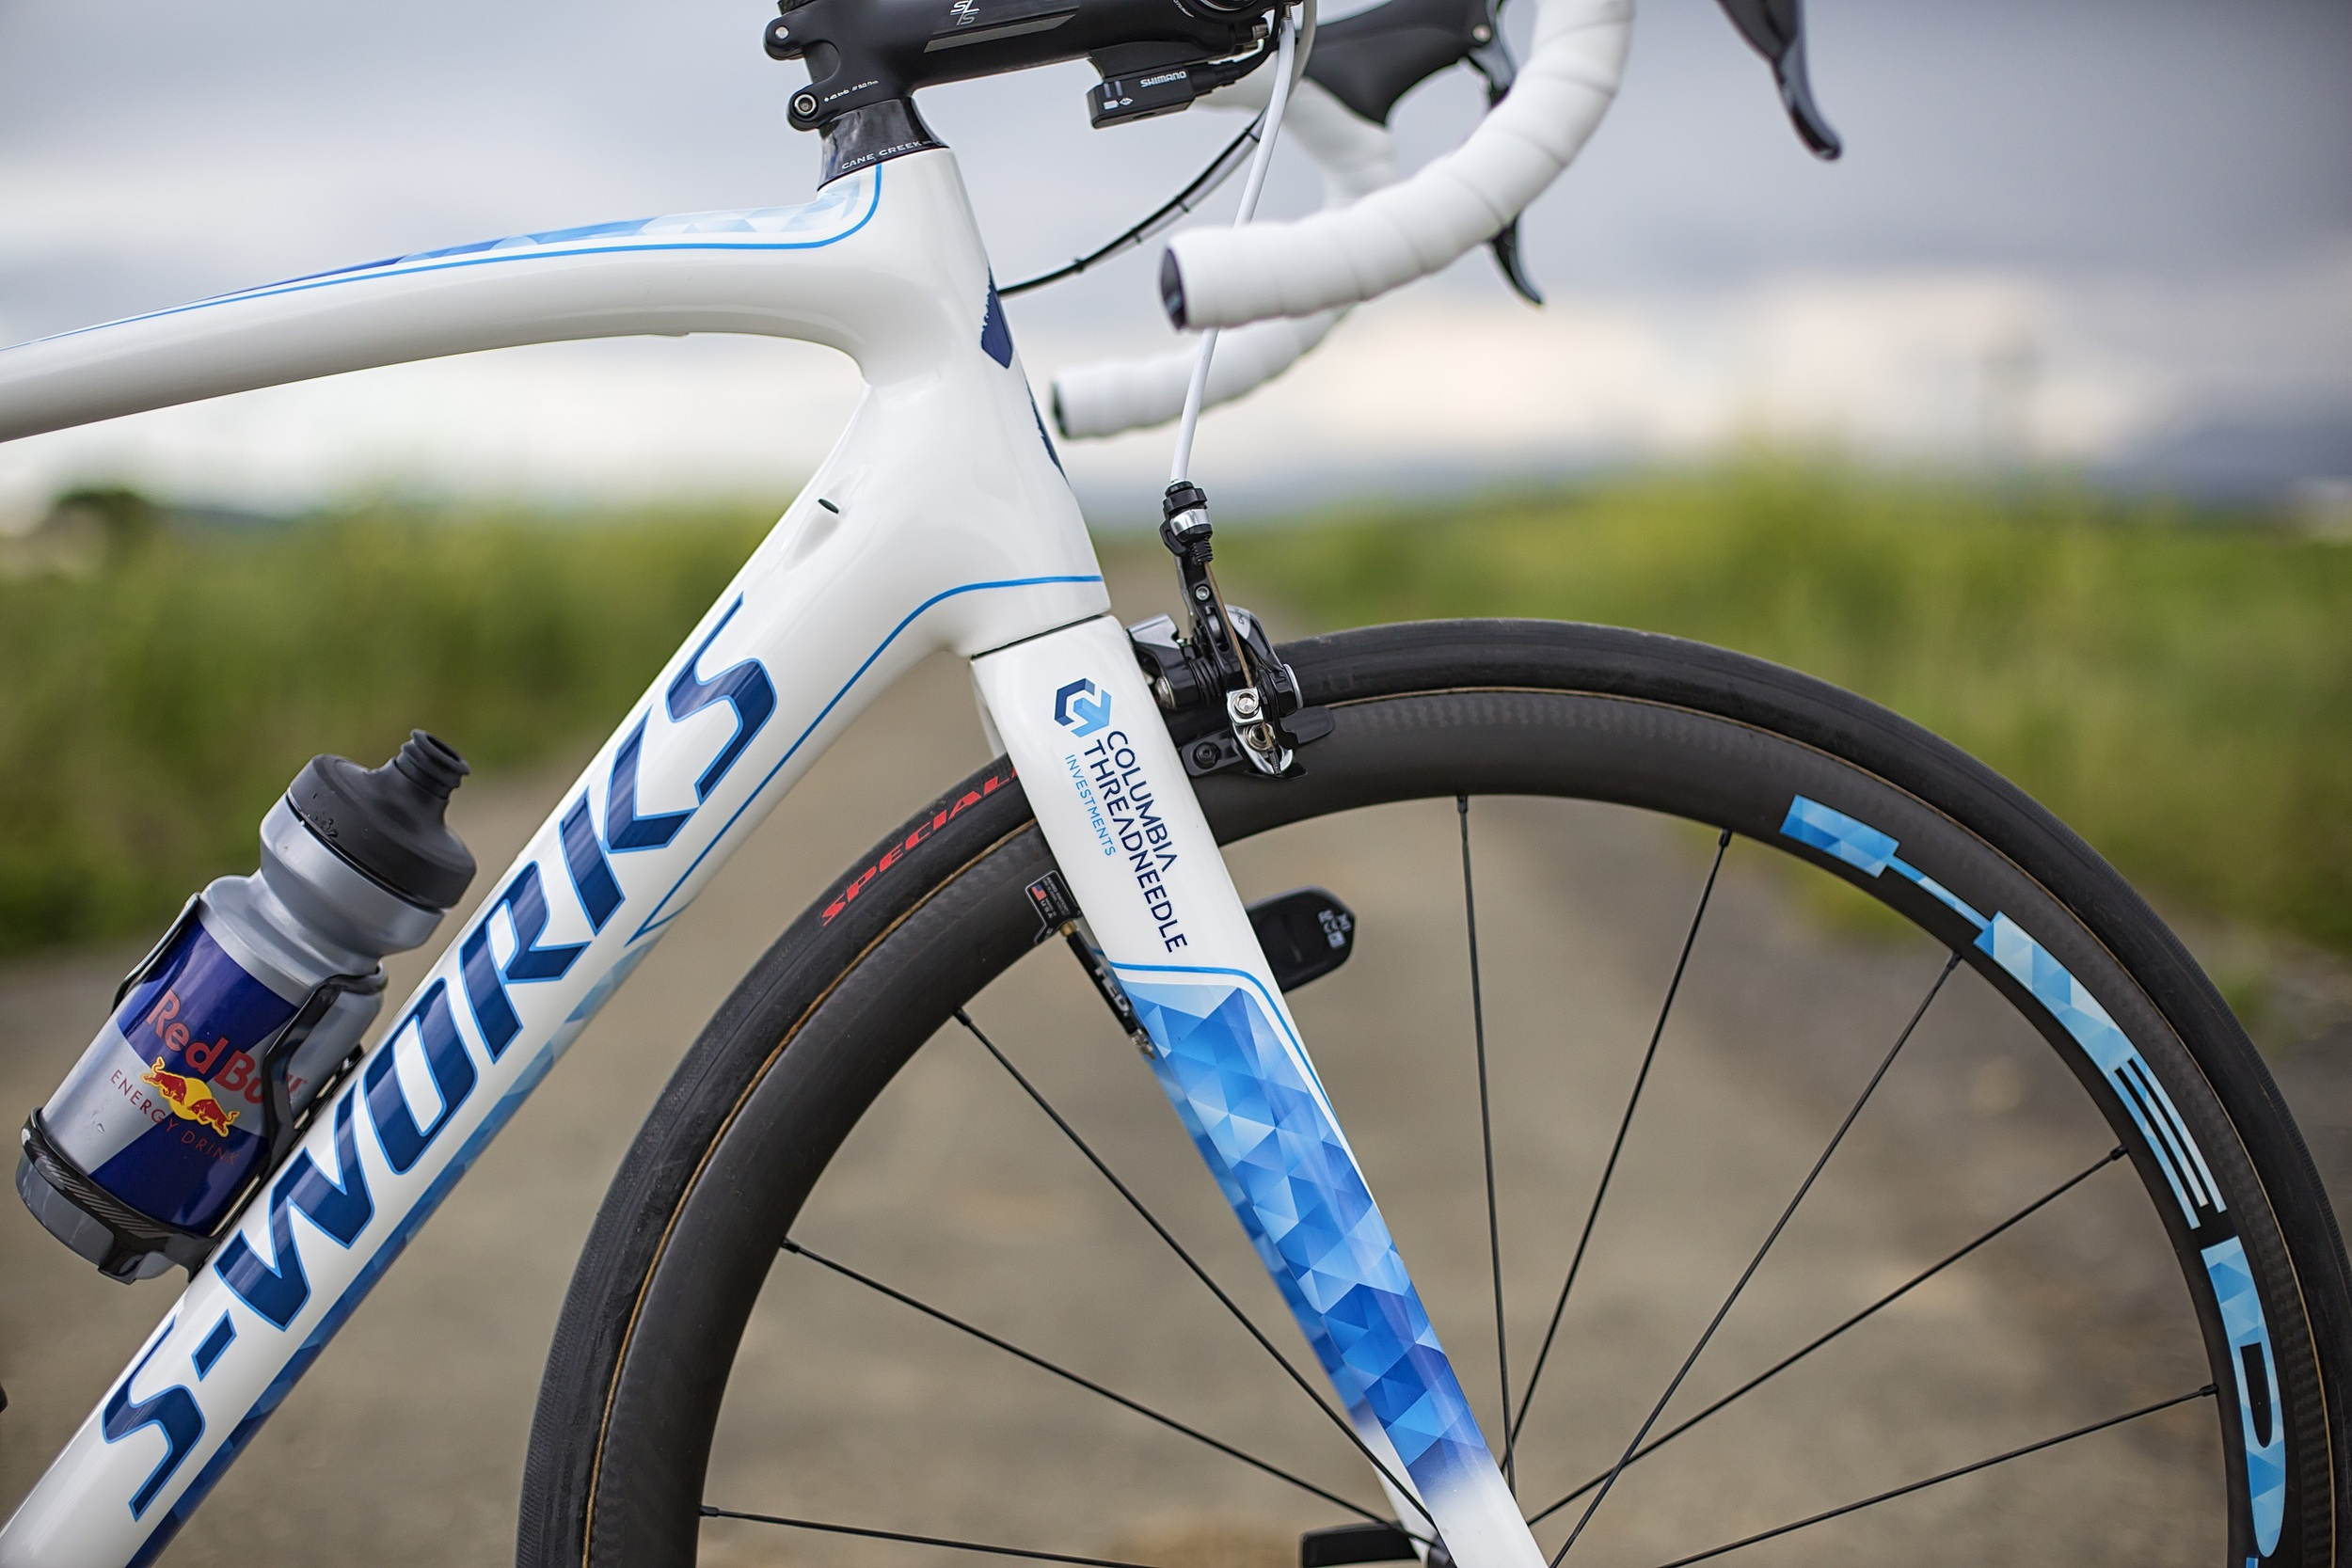 The bike is accompanied with HED Stinger 3's with S-works all-round 2 26mm tubular tires